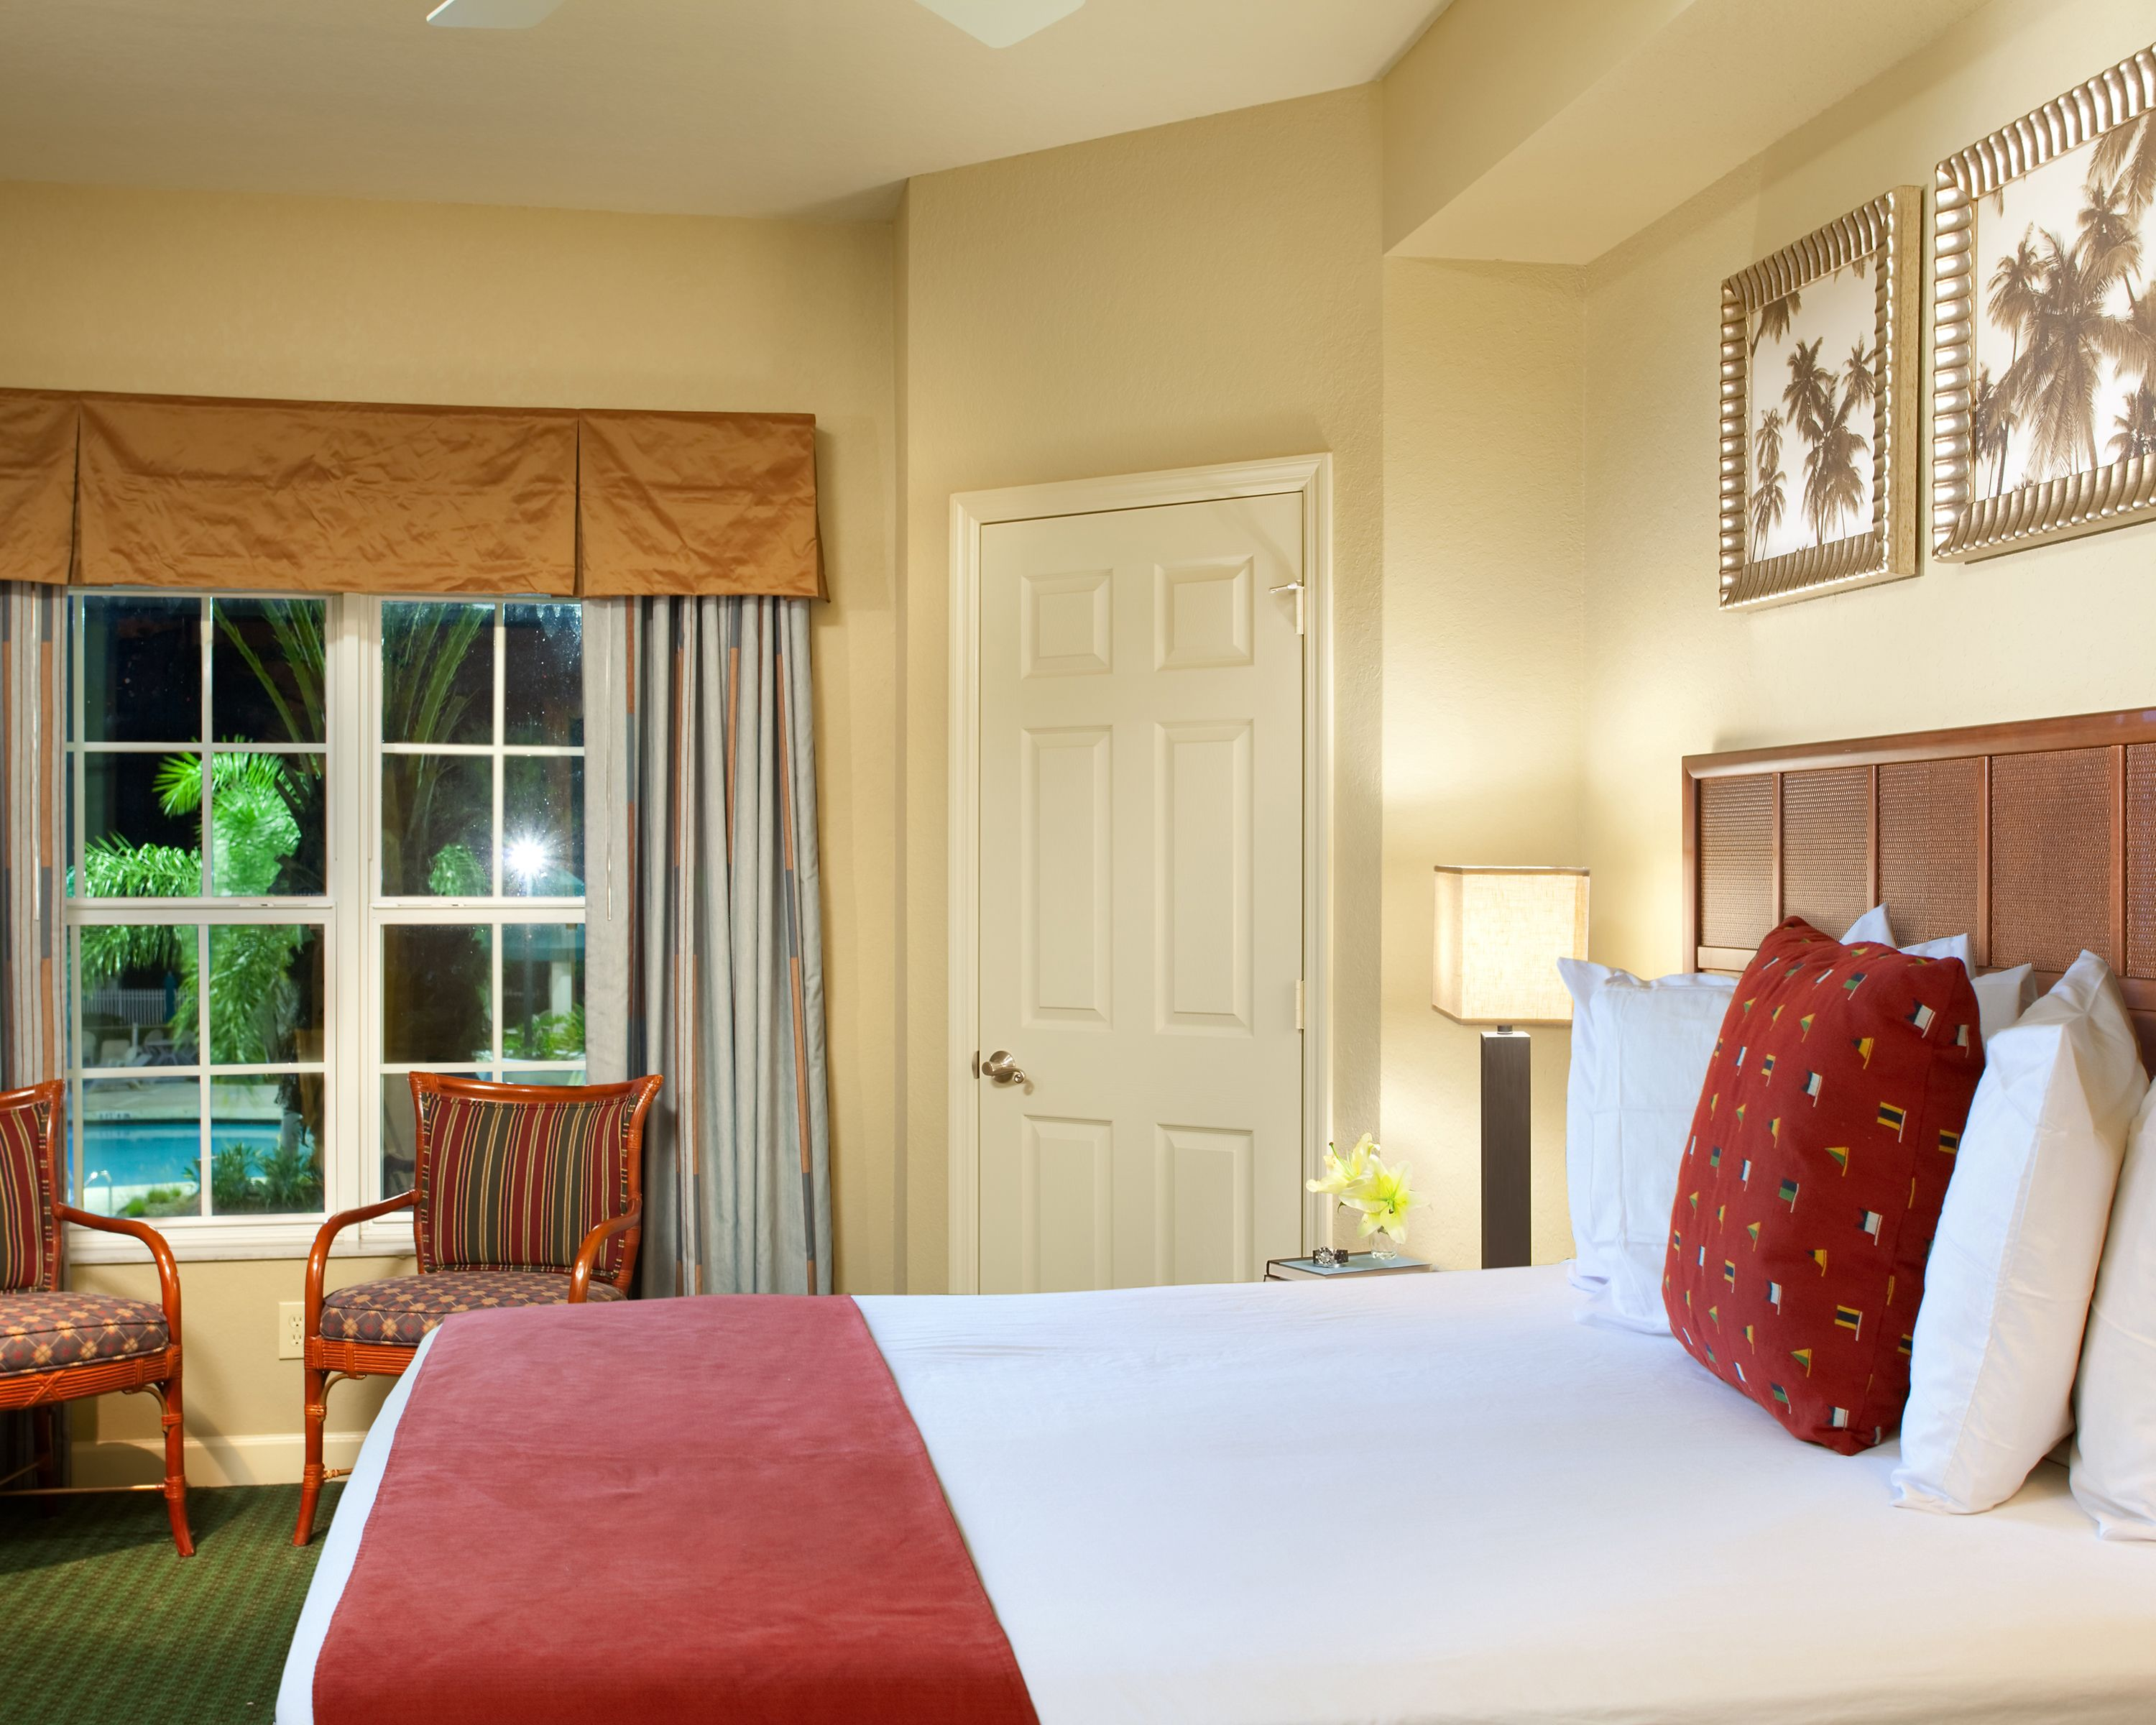 relax in country club inspired 1- and 2-bedroom suites at